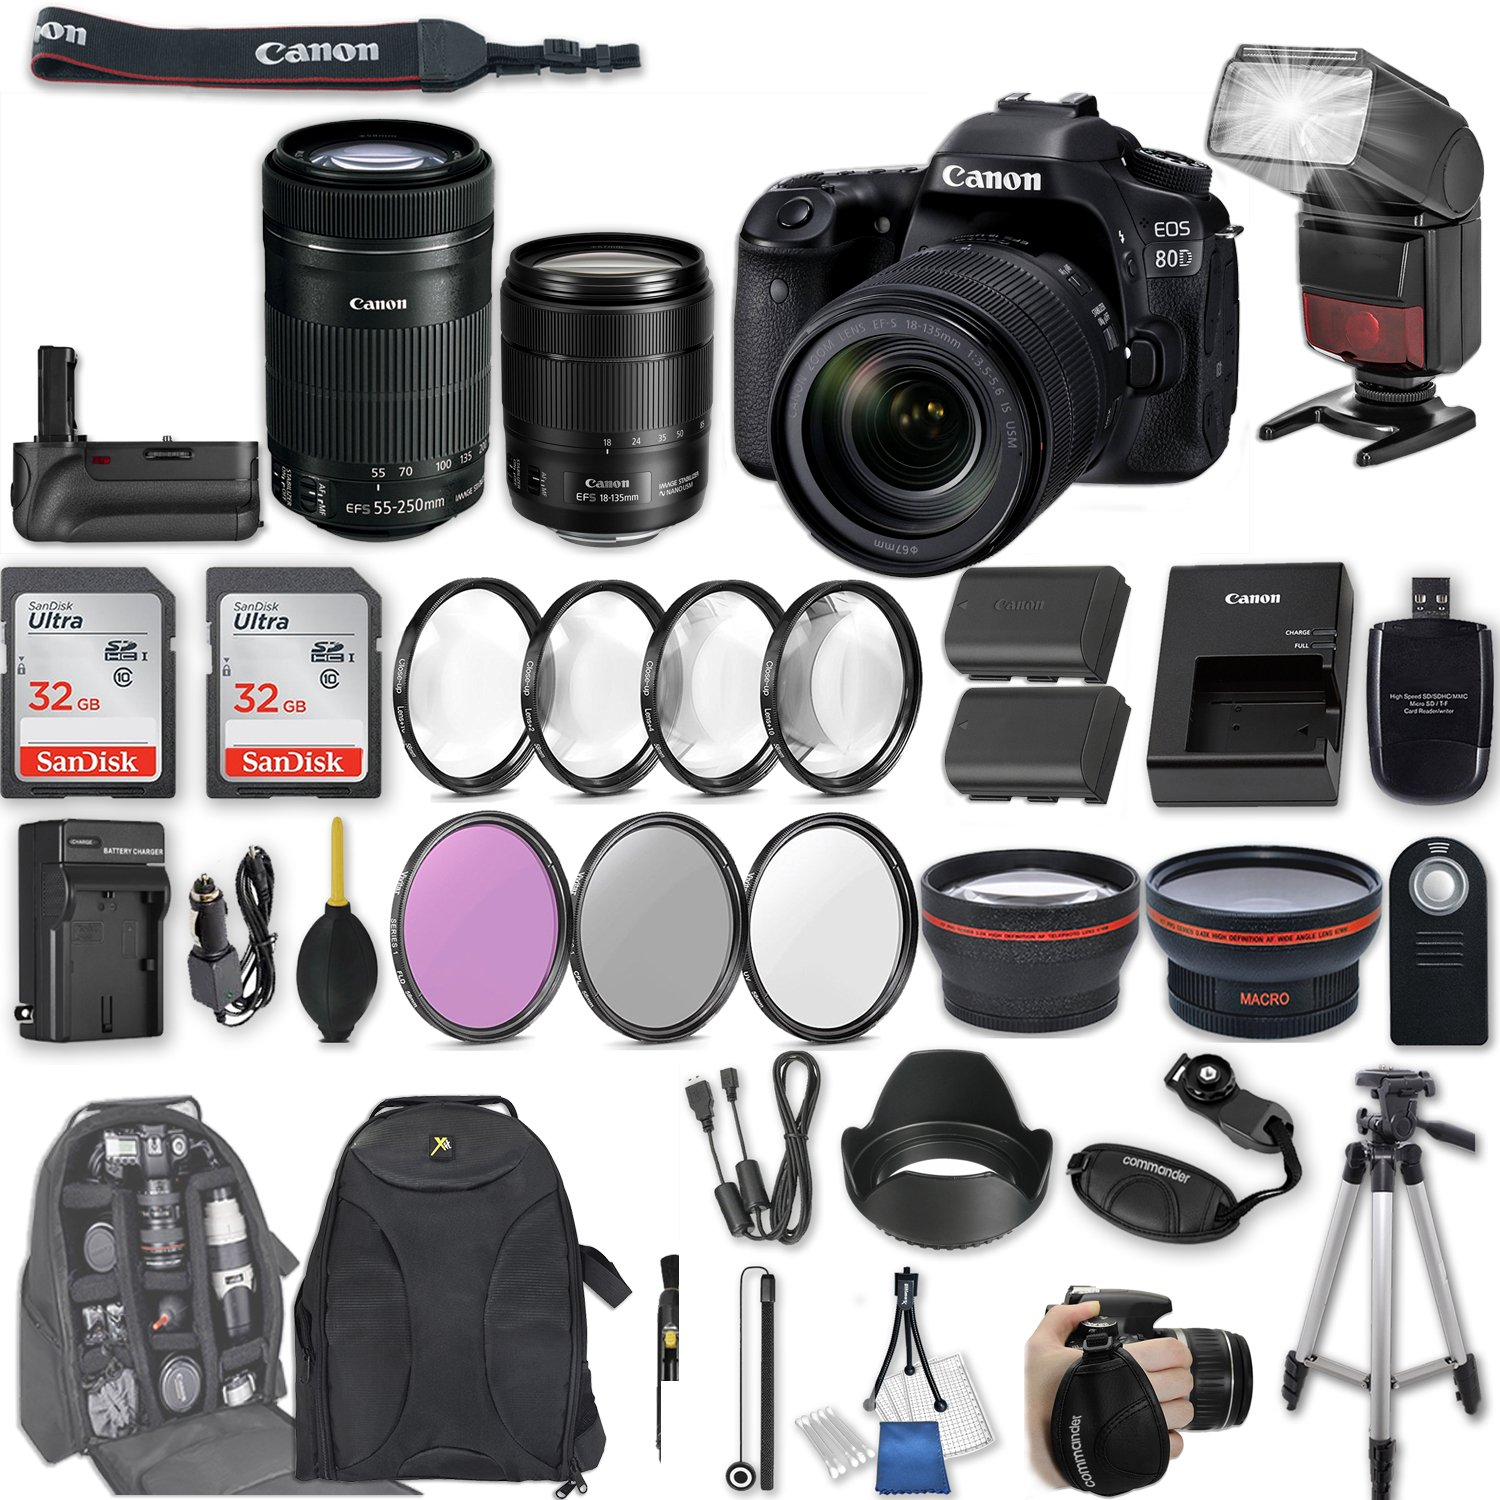 Canon EOS 80D DSLR Camera with EF-S 18-135mm f/3.5-5.6 IS USM Lens + EF-S 55-250mm f/4-5.6 IS STM Lens + 2Pcs 32GB Sandisk SD Memory + Automatic LED Flash + Battery Grip + Filter & Macro Kits + More by Canon